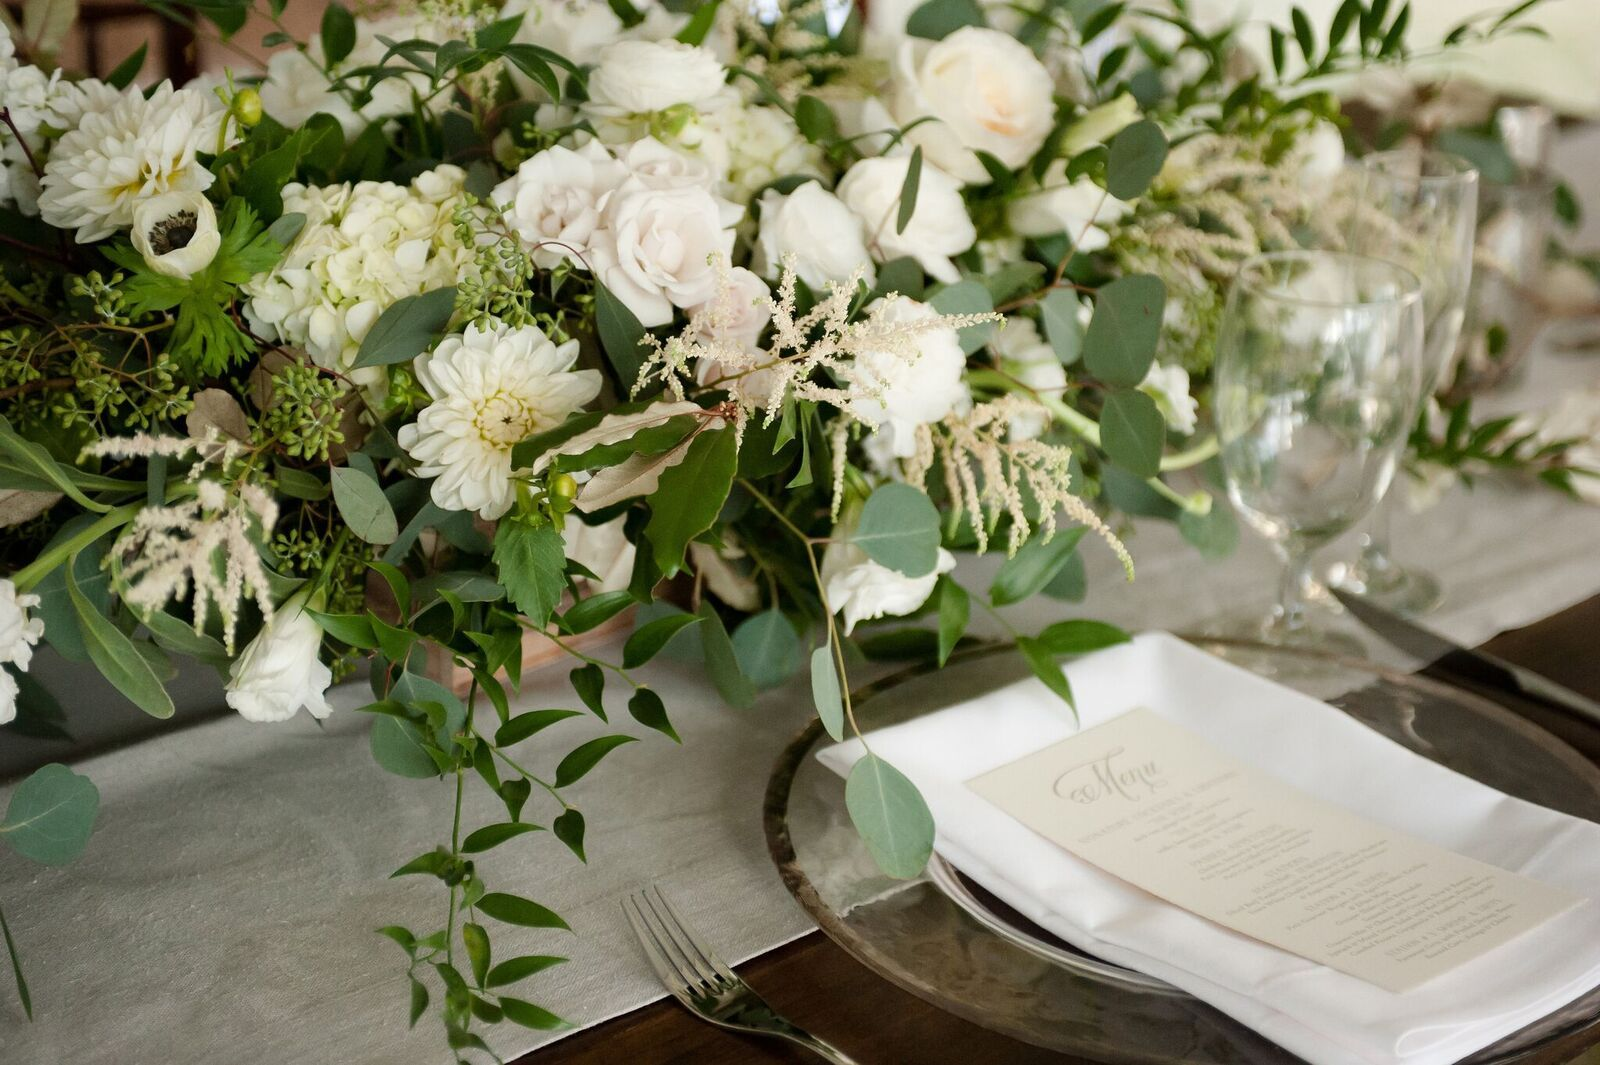 Wedding decorations green  Table Setting Ideas Flowers on table White and Green Clear Plates